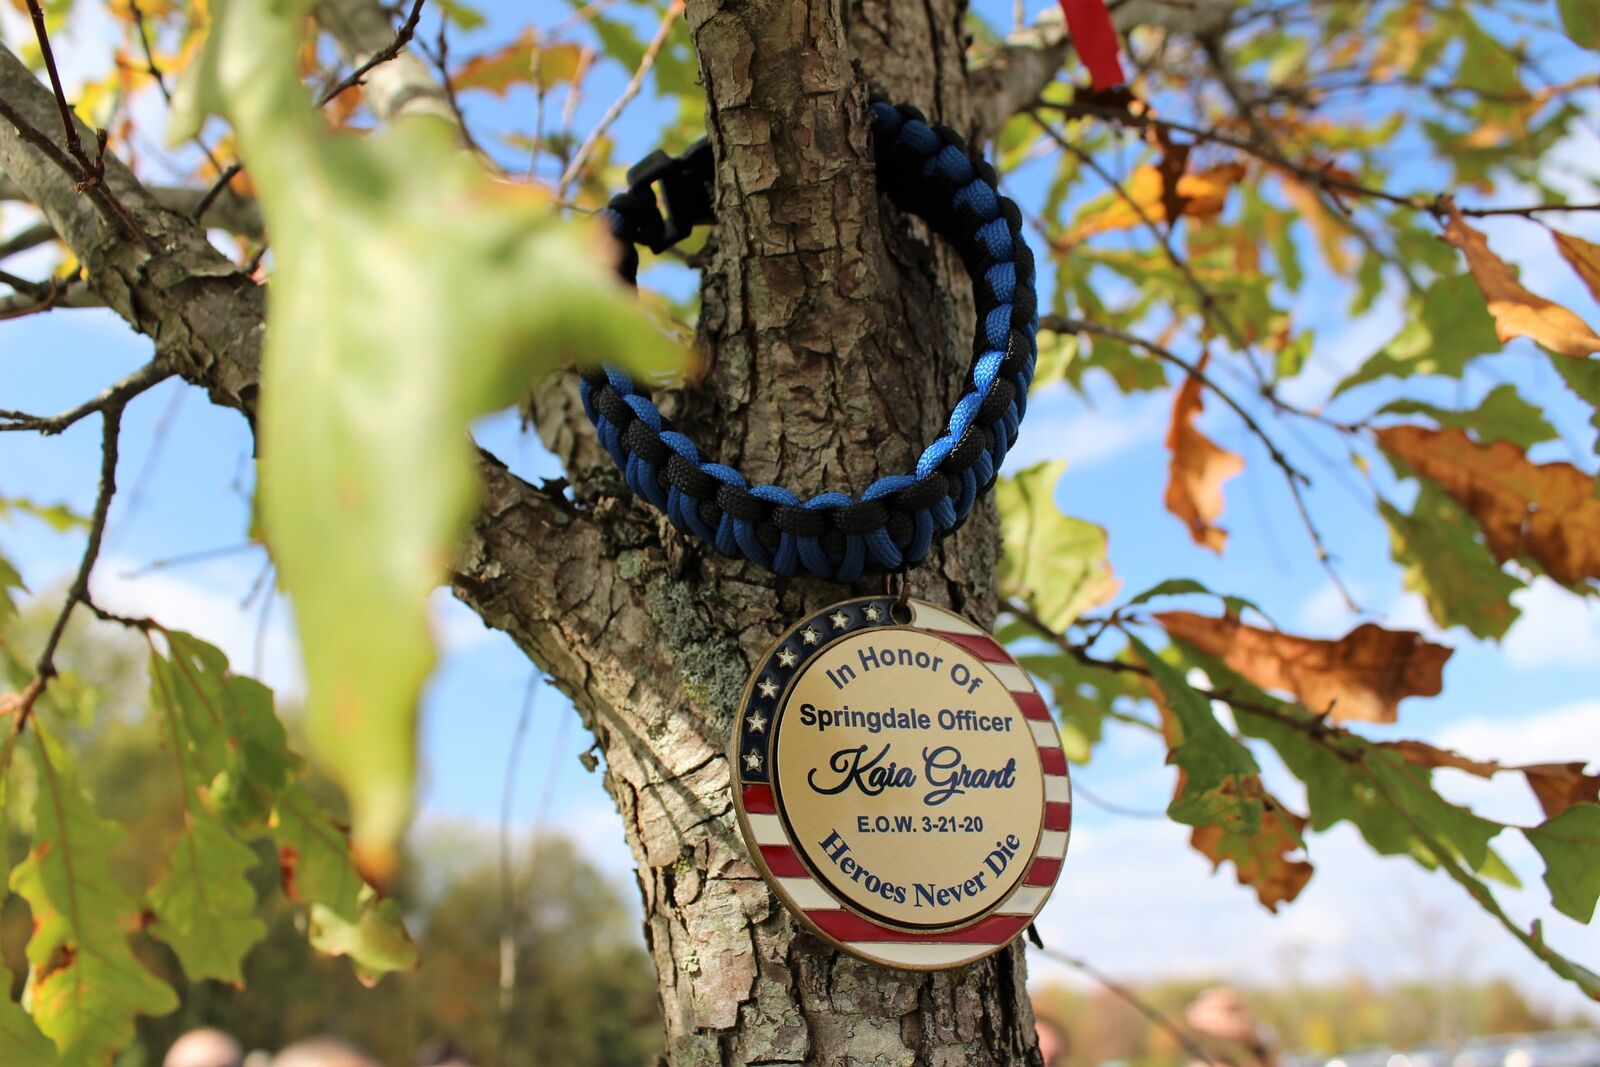 A special tribute to Officer Kaia Grant is growing in Summit Park's dog park in Blue Ash. (Blue Ash Police Association)